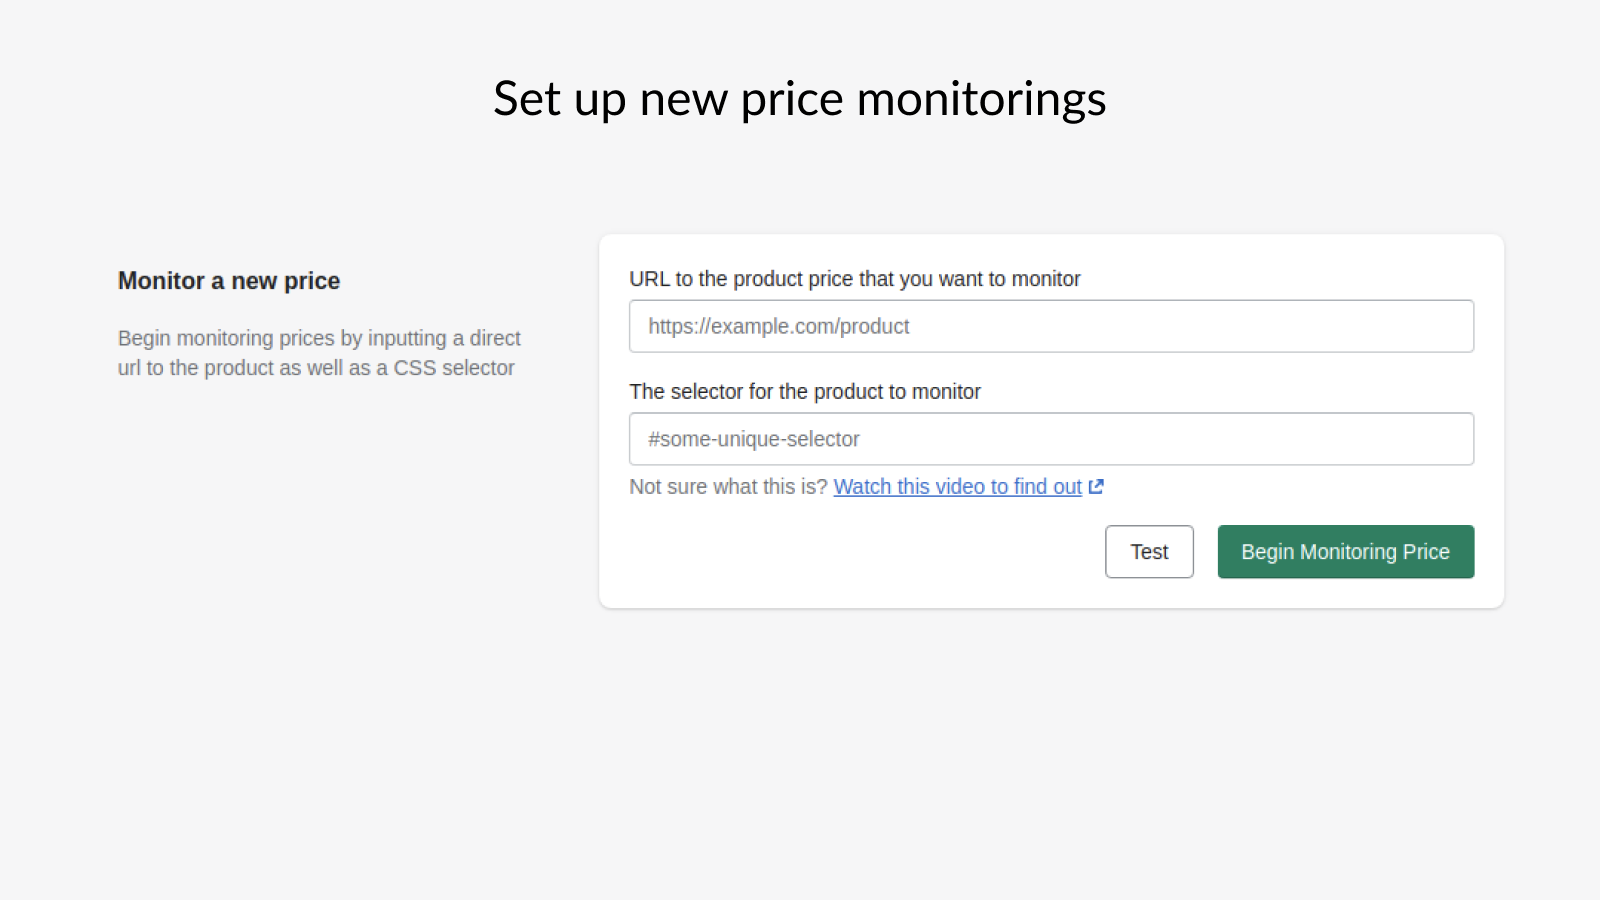 Add a new price monitoring in the Shopify app